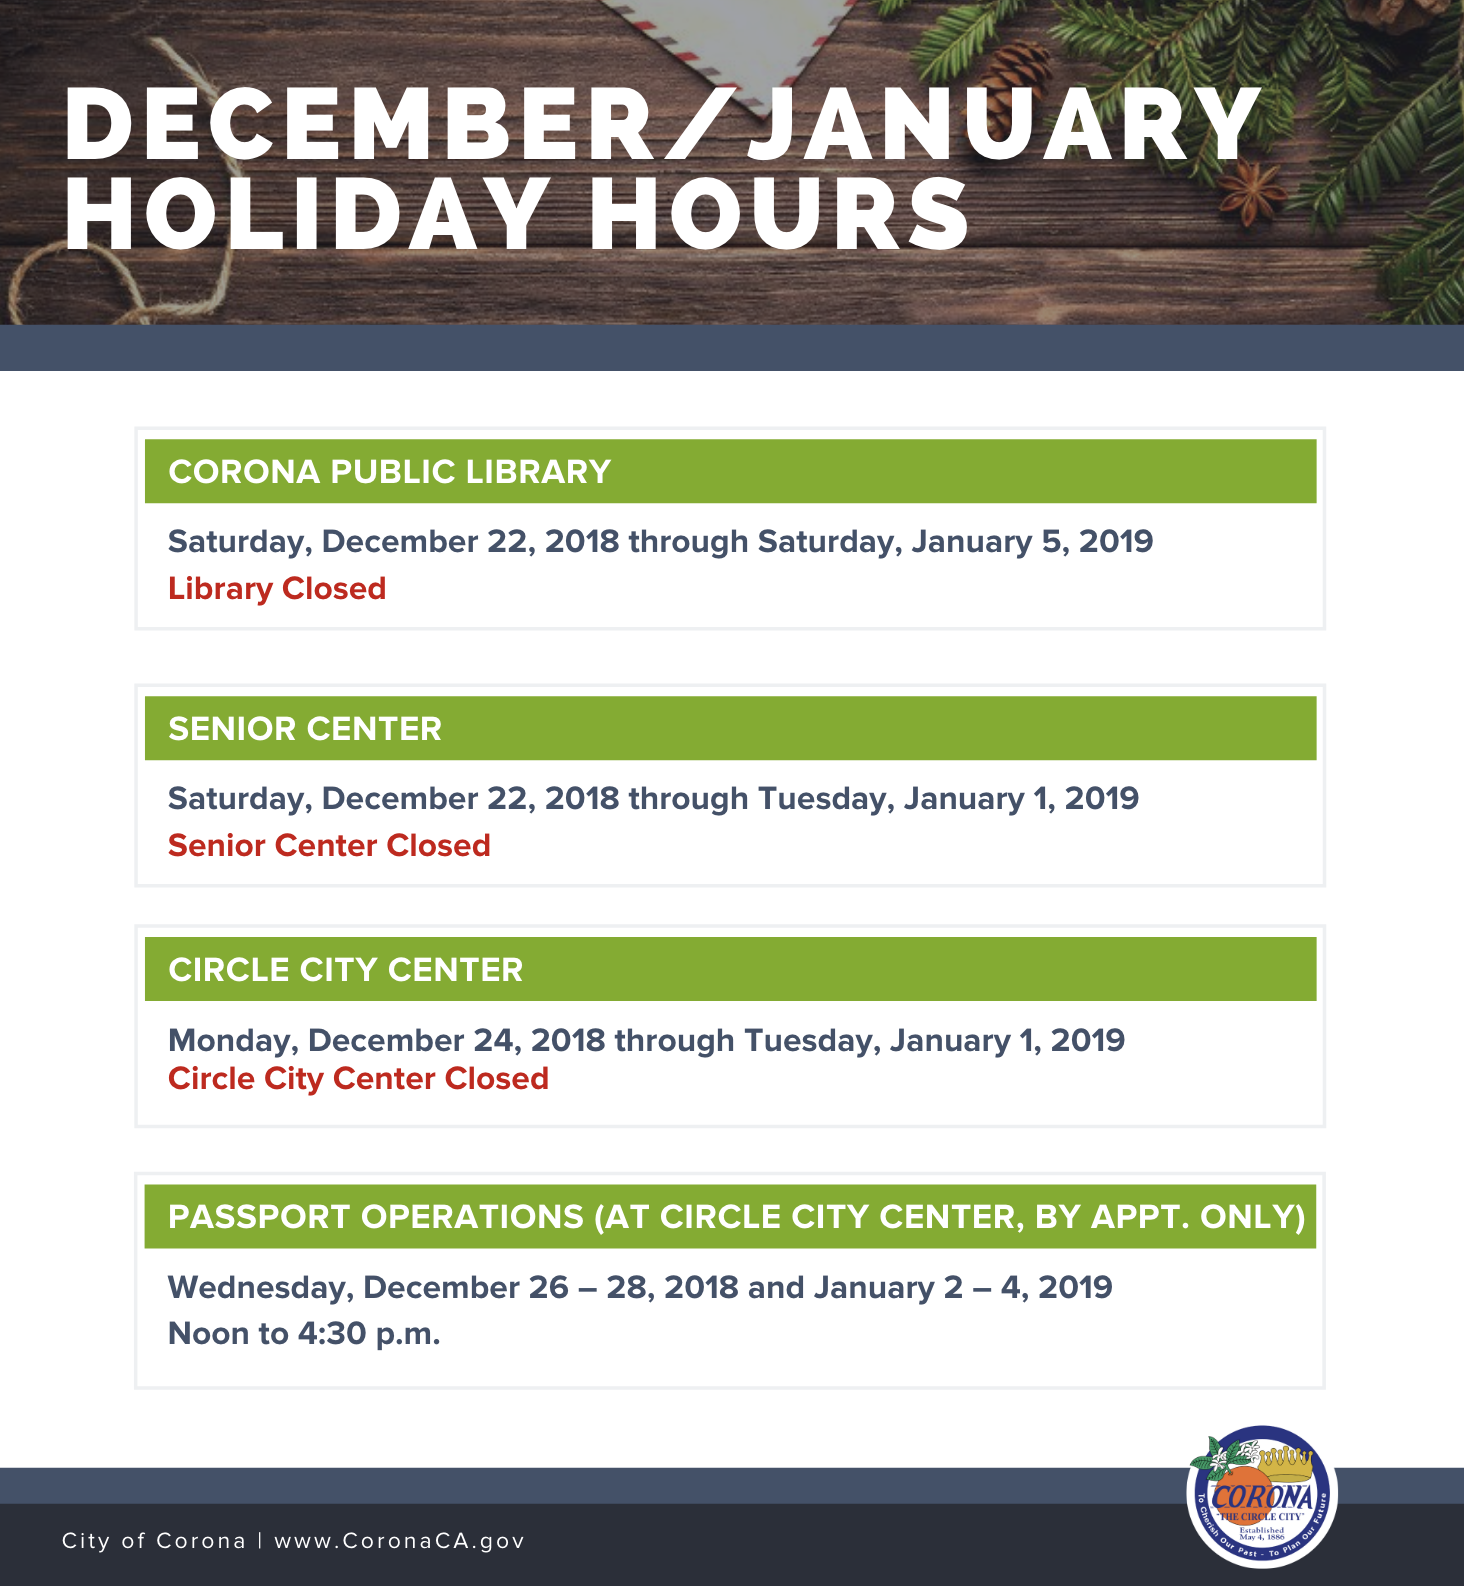 December/January Holiday Hours